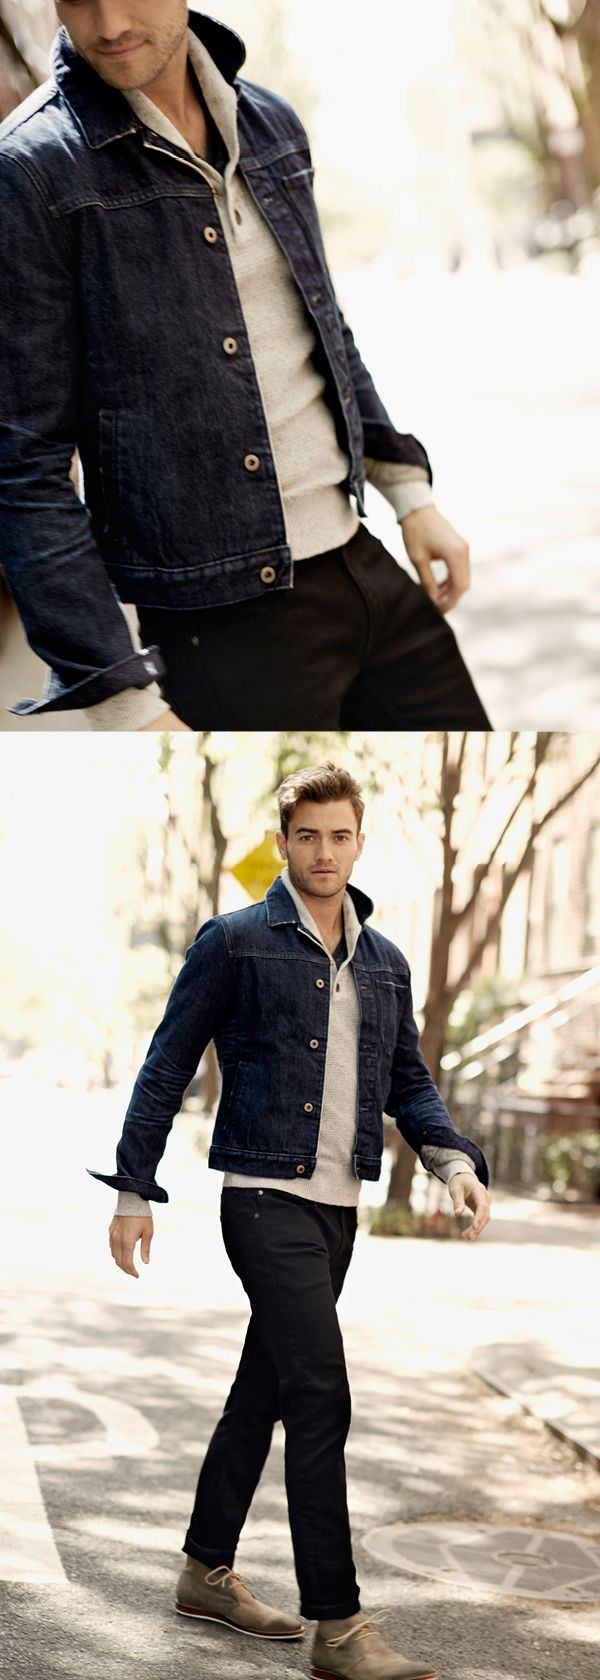 18 Best Global Male Images On Pinterest Silver Charms Blazers And Tendencies Tshirt Japan Soda Hitam Xl Keep Your Look Casual Yet Polished In Our Classic Dark Denim Jacket Pair This Jean